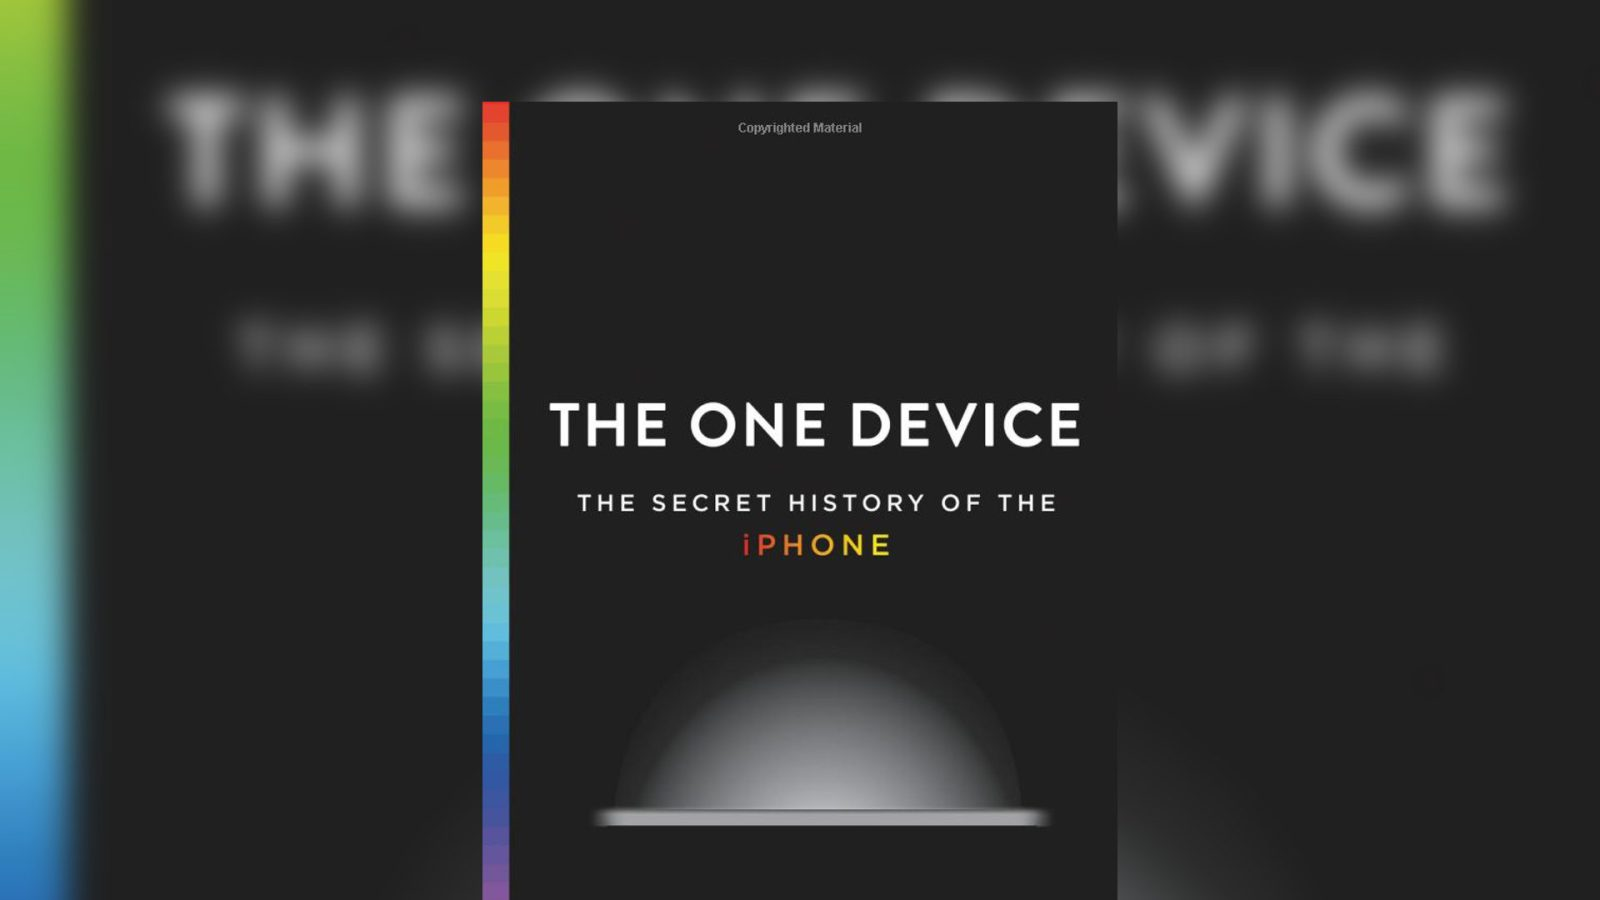 «The One Device: The Secret History of the iPhone» — новая книга про создание iPhone